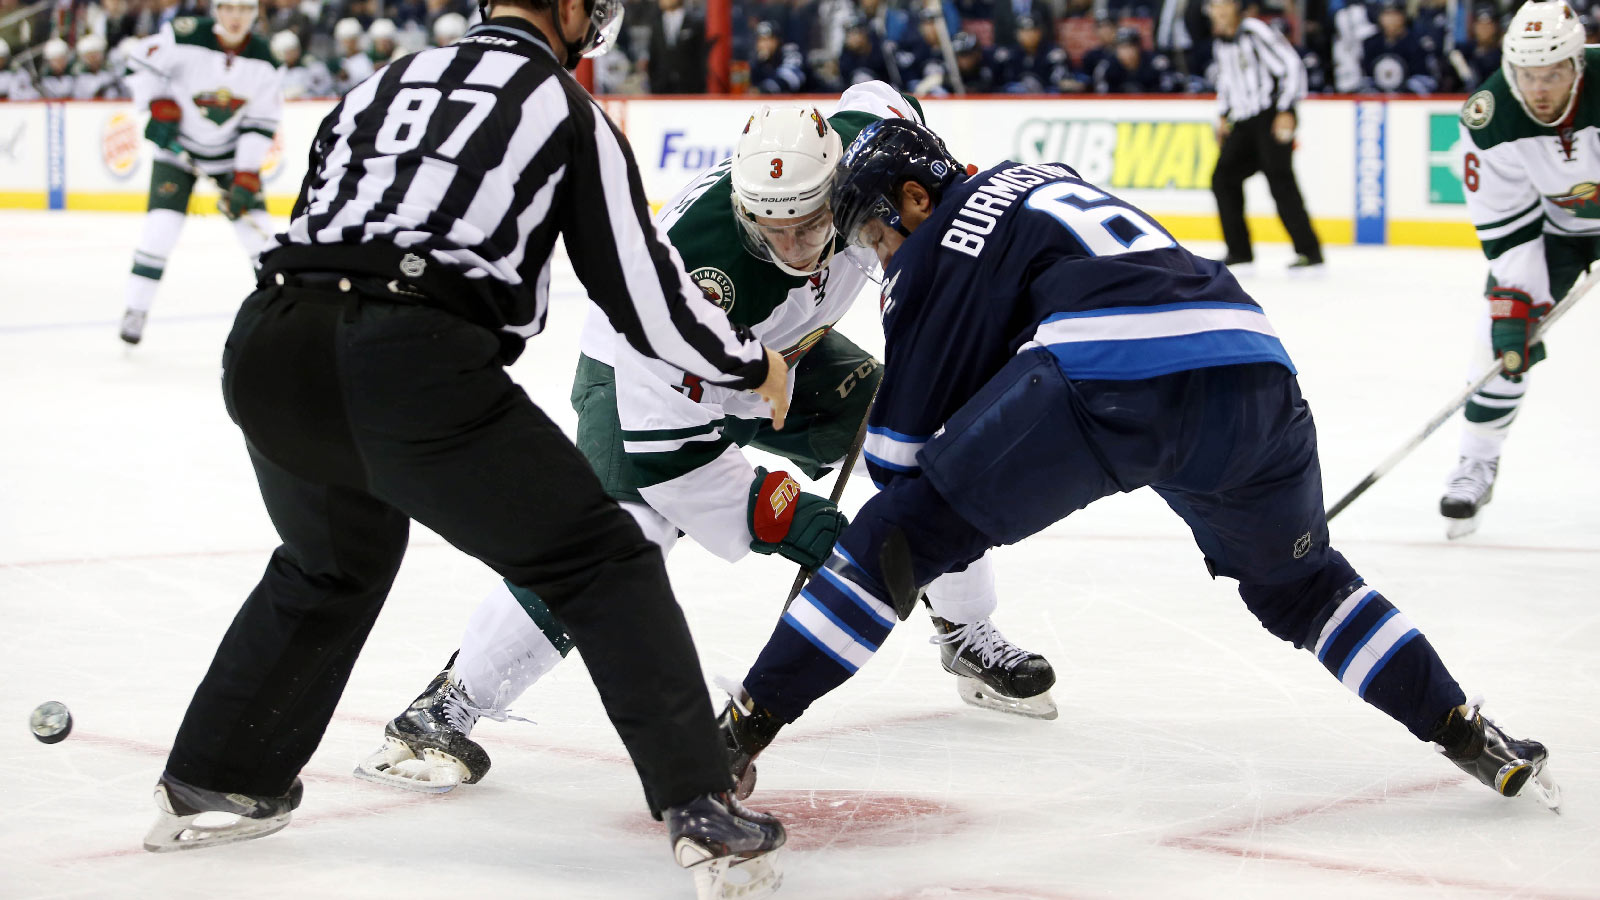 Backstrom, Wild blank Jets in exhibition tuneup